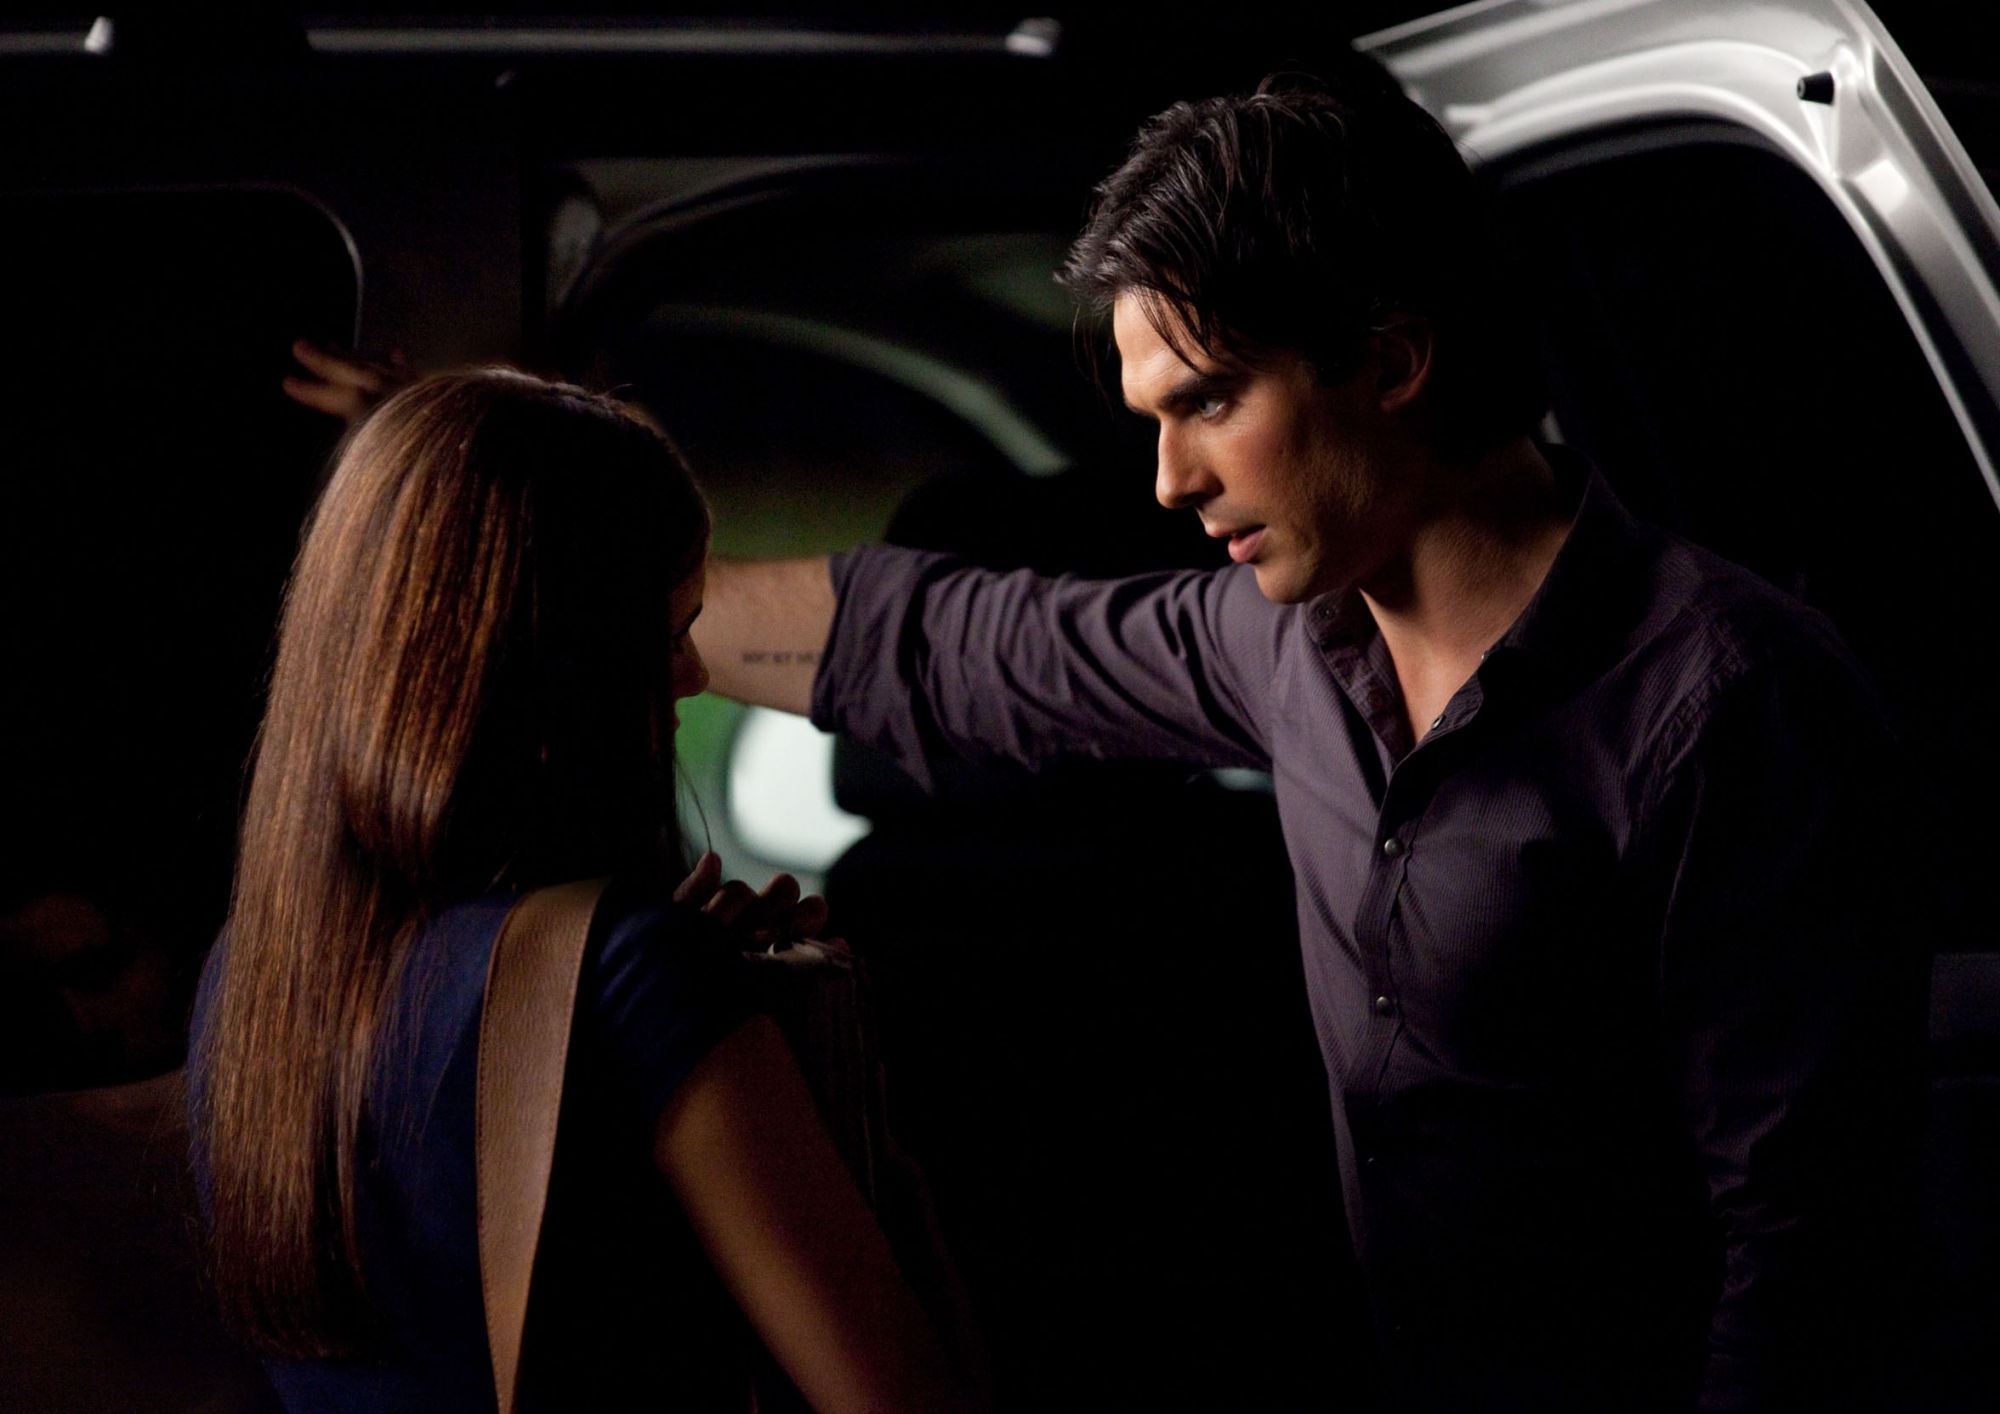 All the vampire diaries couples images damon and elena hd for Damon y elena